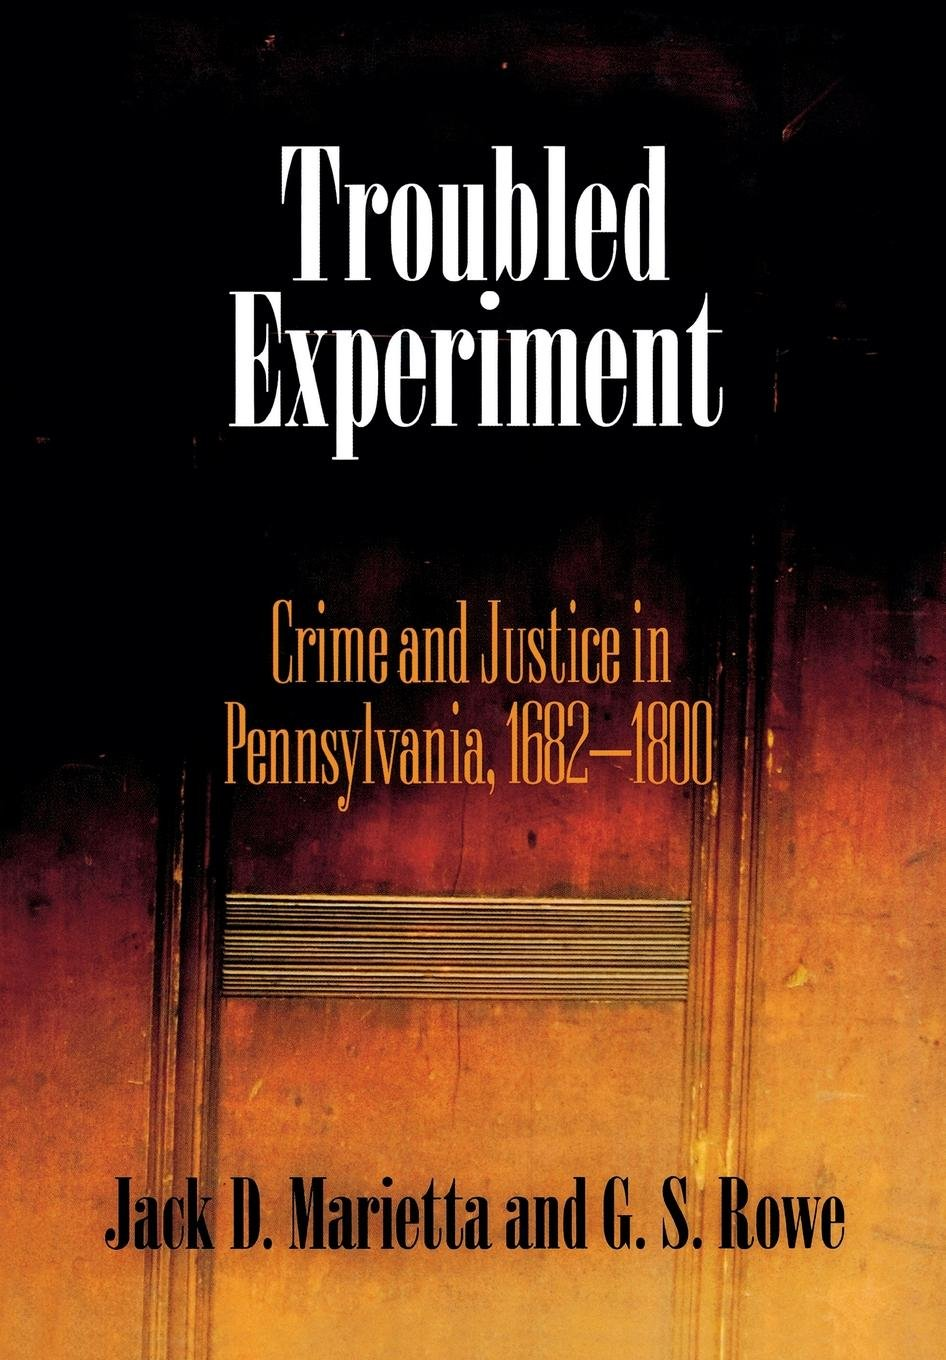 Troubled Experiment: Crime and Justice in Pennsylvania, 1682-1800 (Early American Studies) pdf